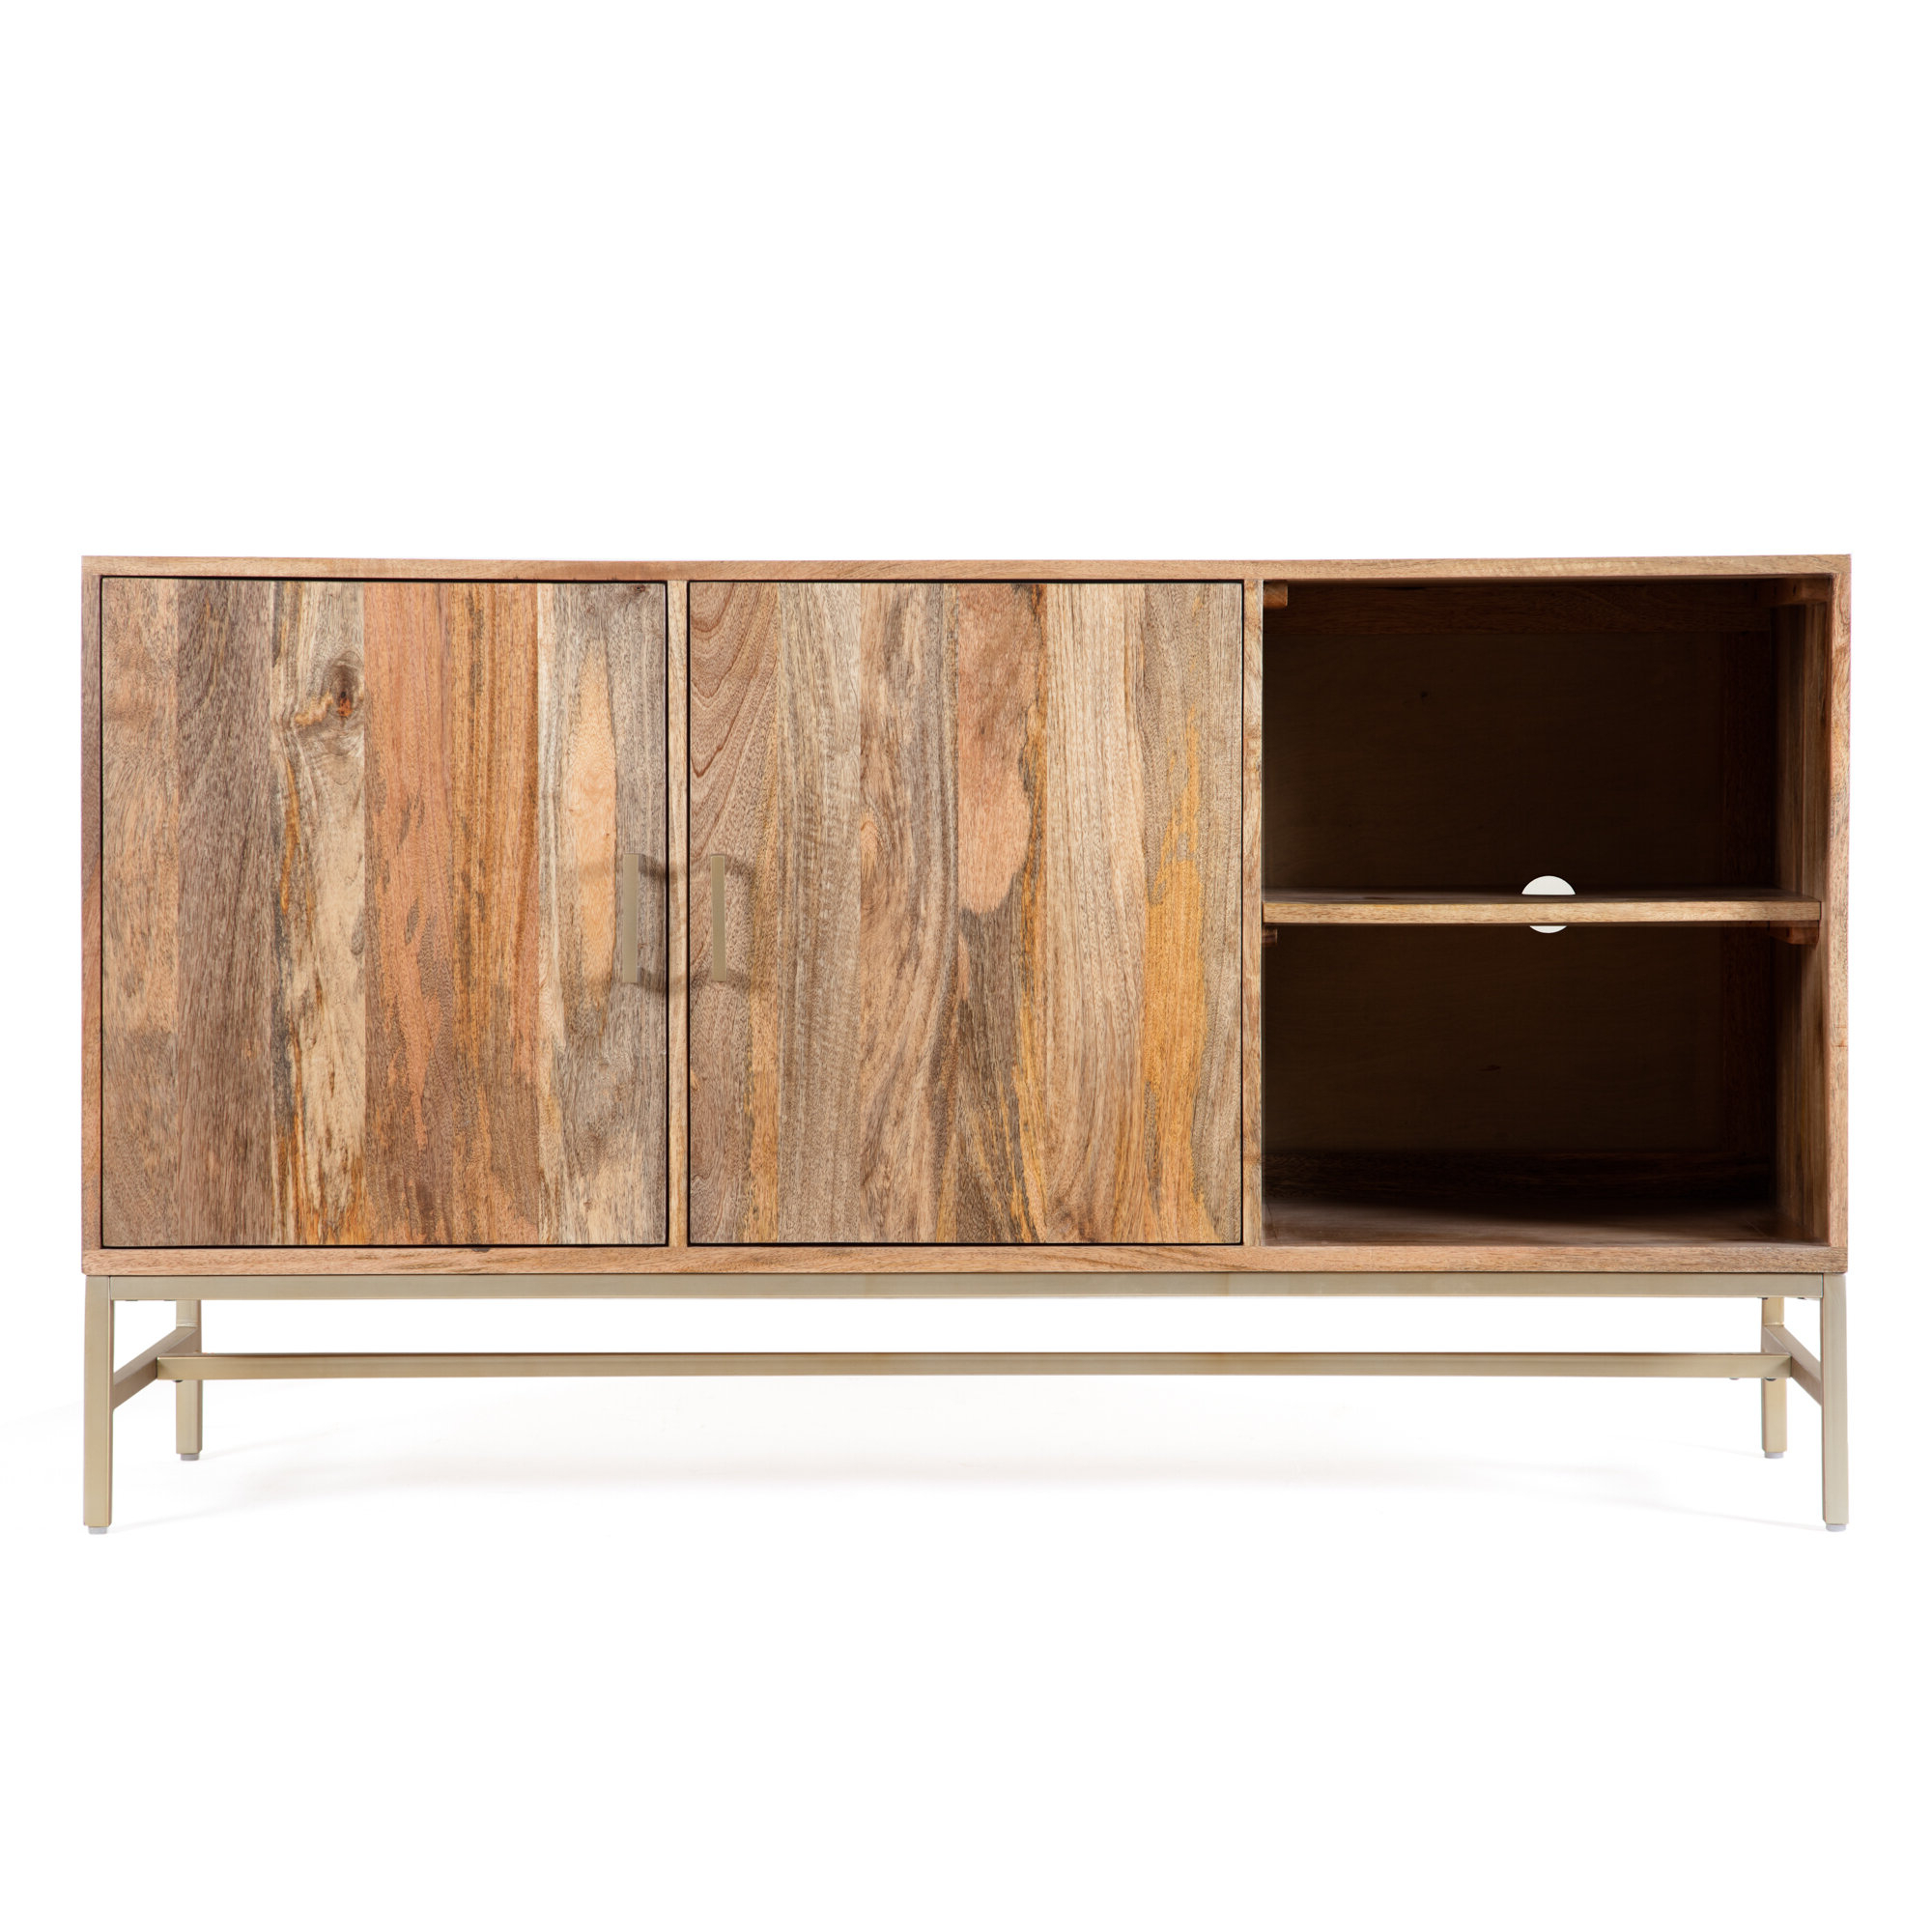 Modern & Contemporary Media Credenza | Allmodern Intended For Lainey Credenzas (View 15 of 20)